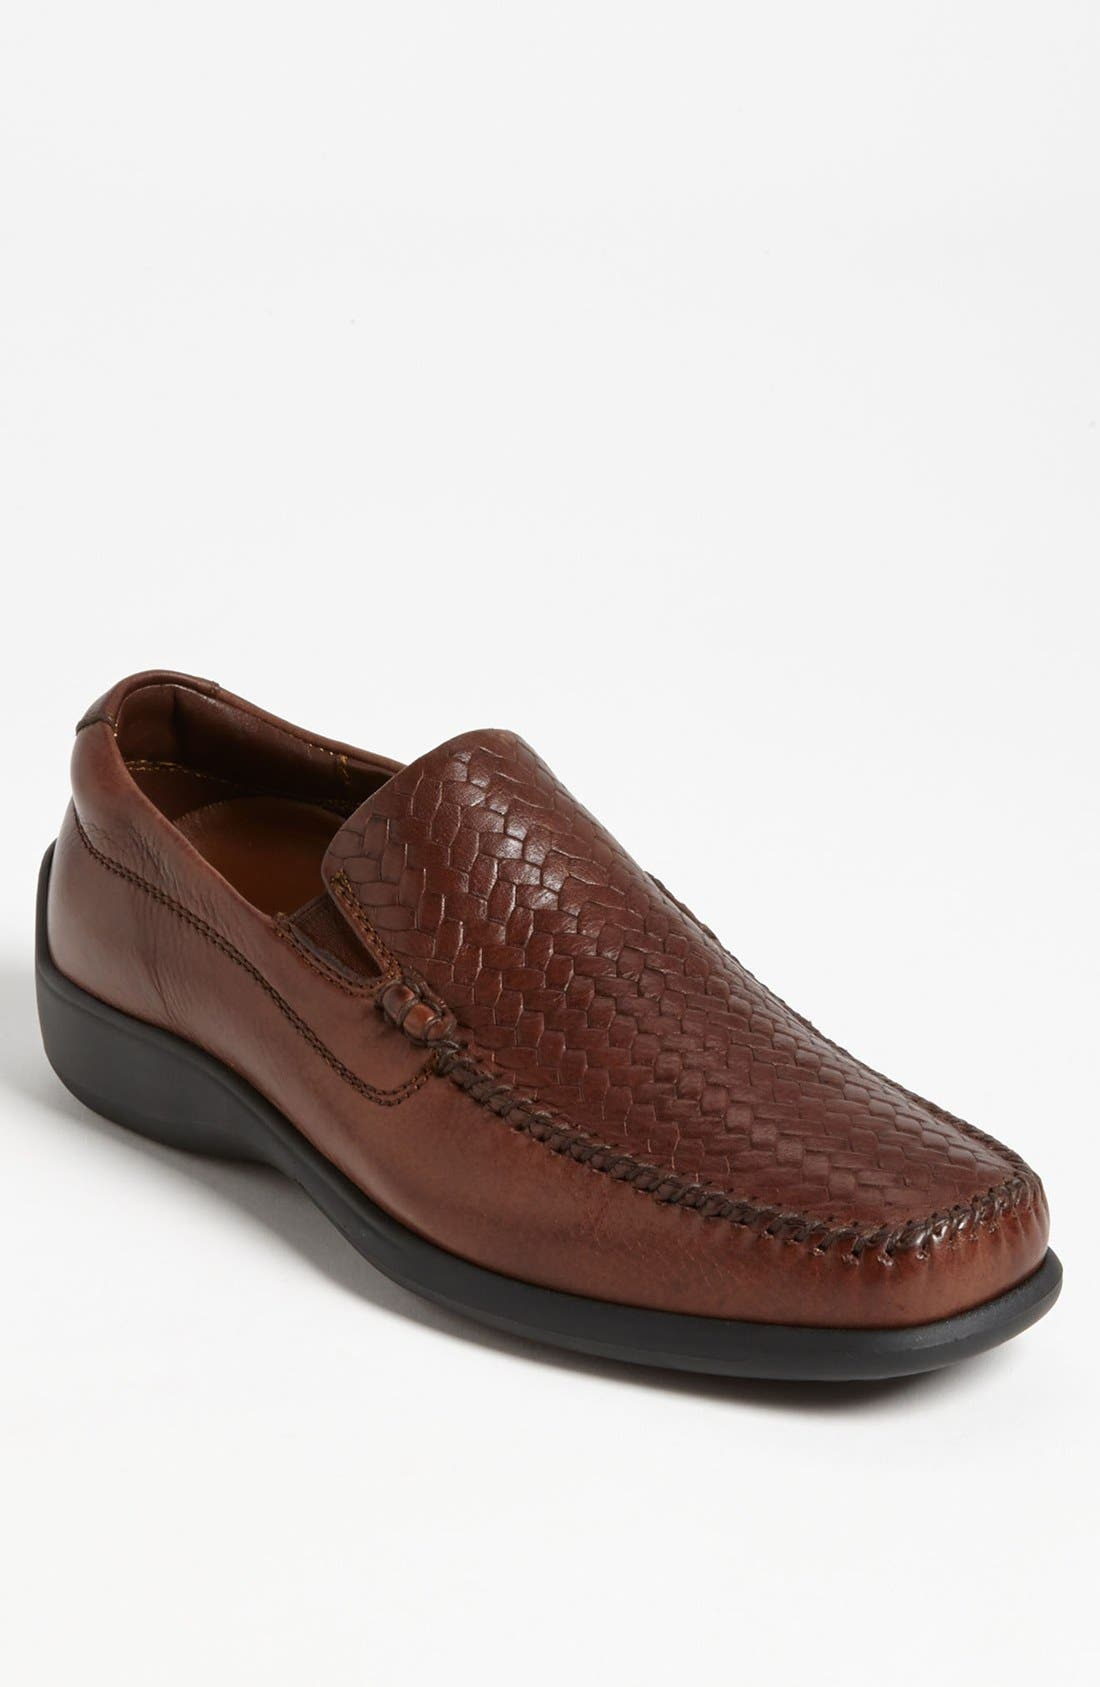 Alternate Image 1 Selected - Neil M 'Palermo' Loafer